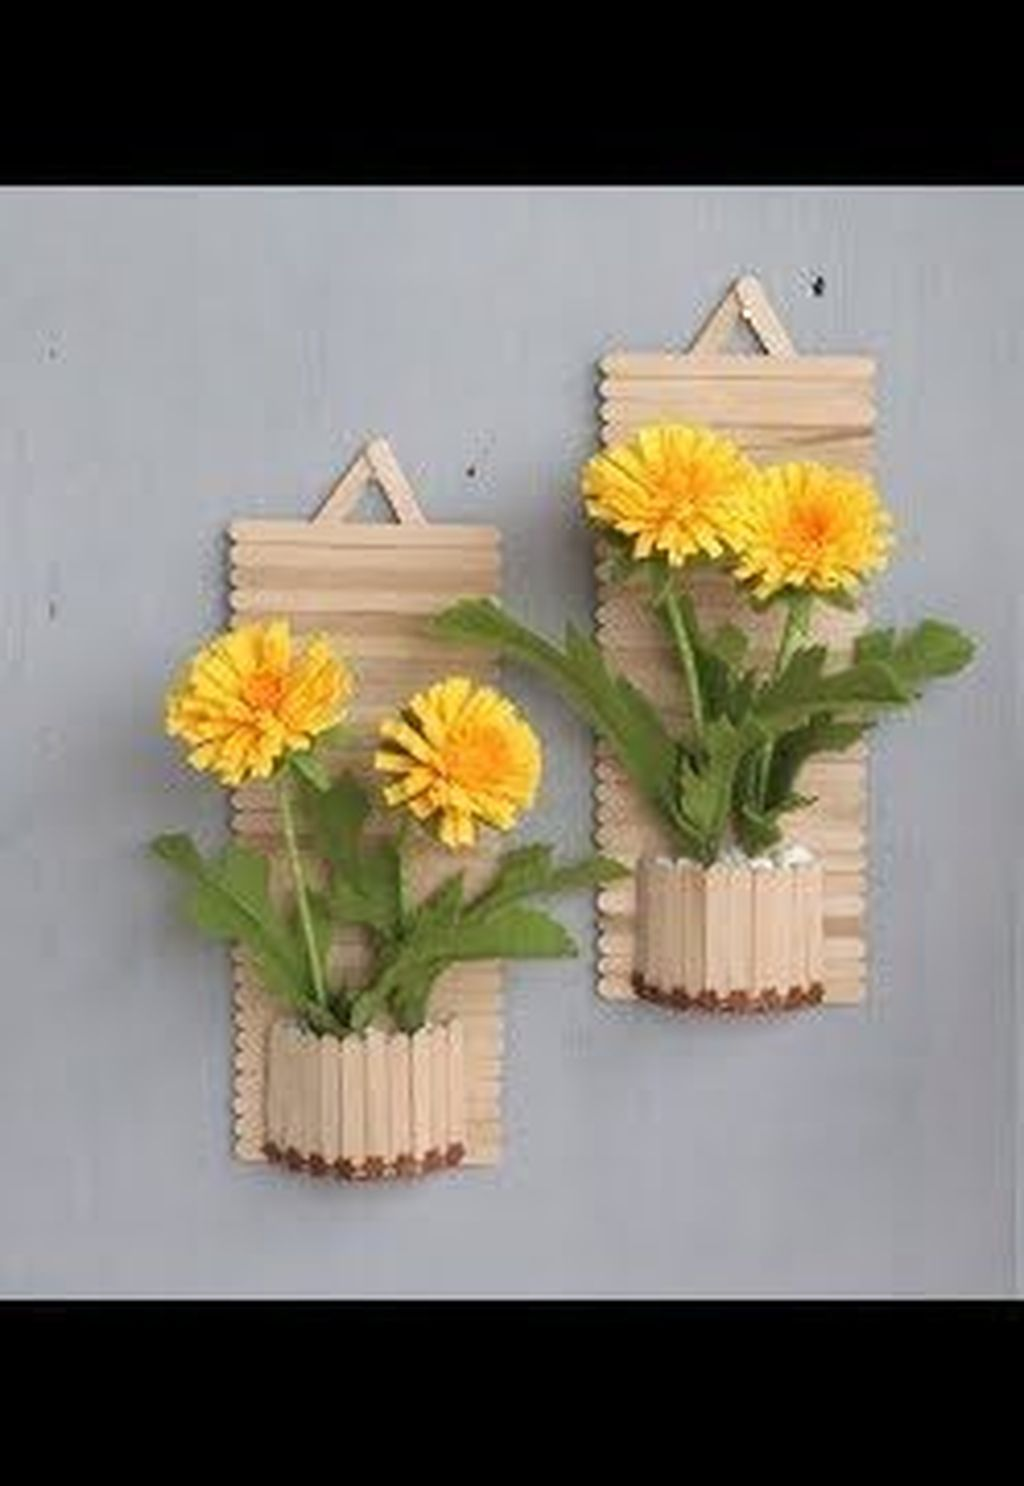 34 Gorgeous Diy Popsicle Stick Design Ideas For Home To ...